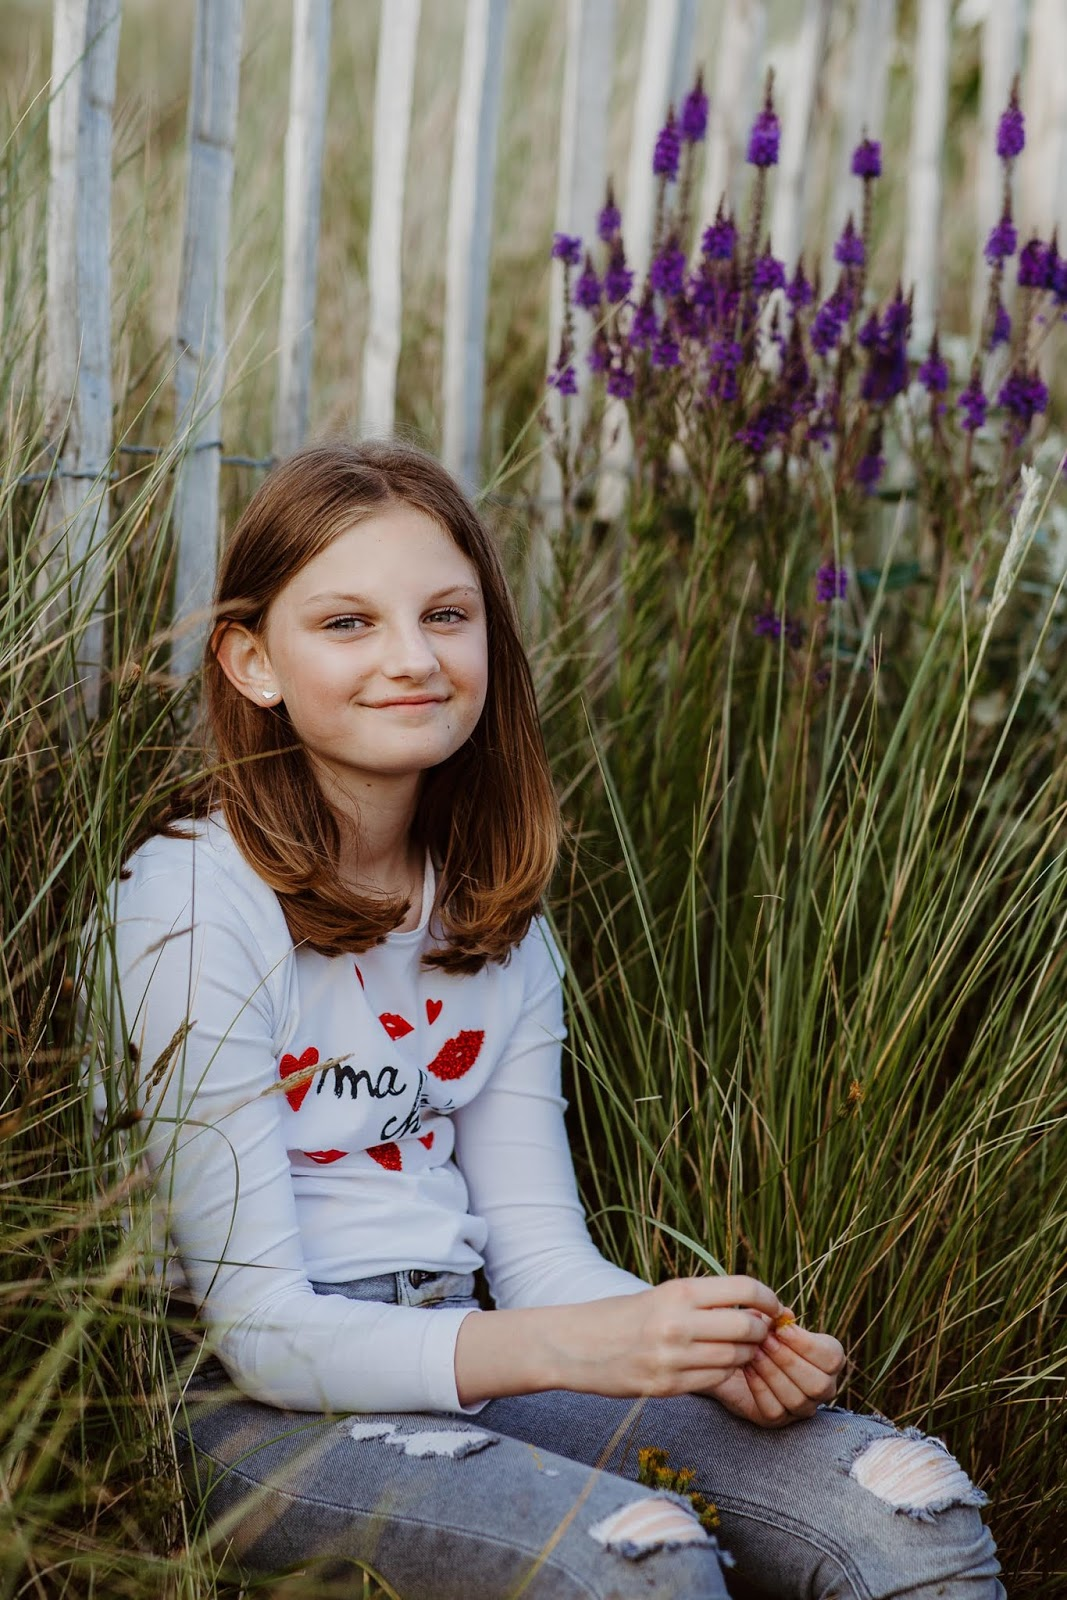 girl with marram grass and purple flowers in the background